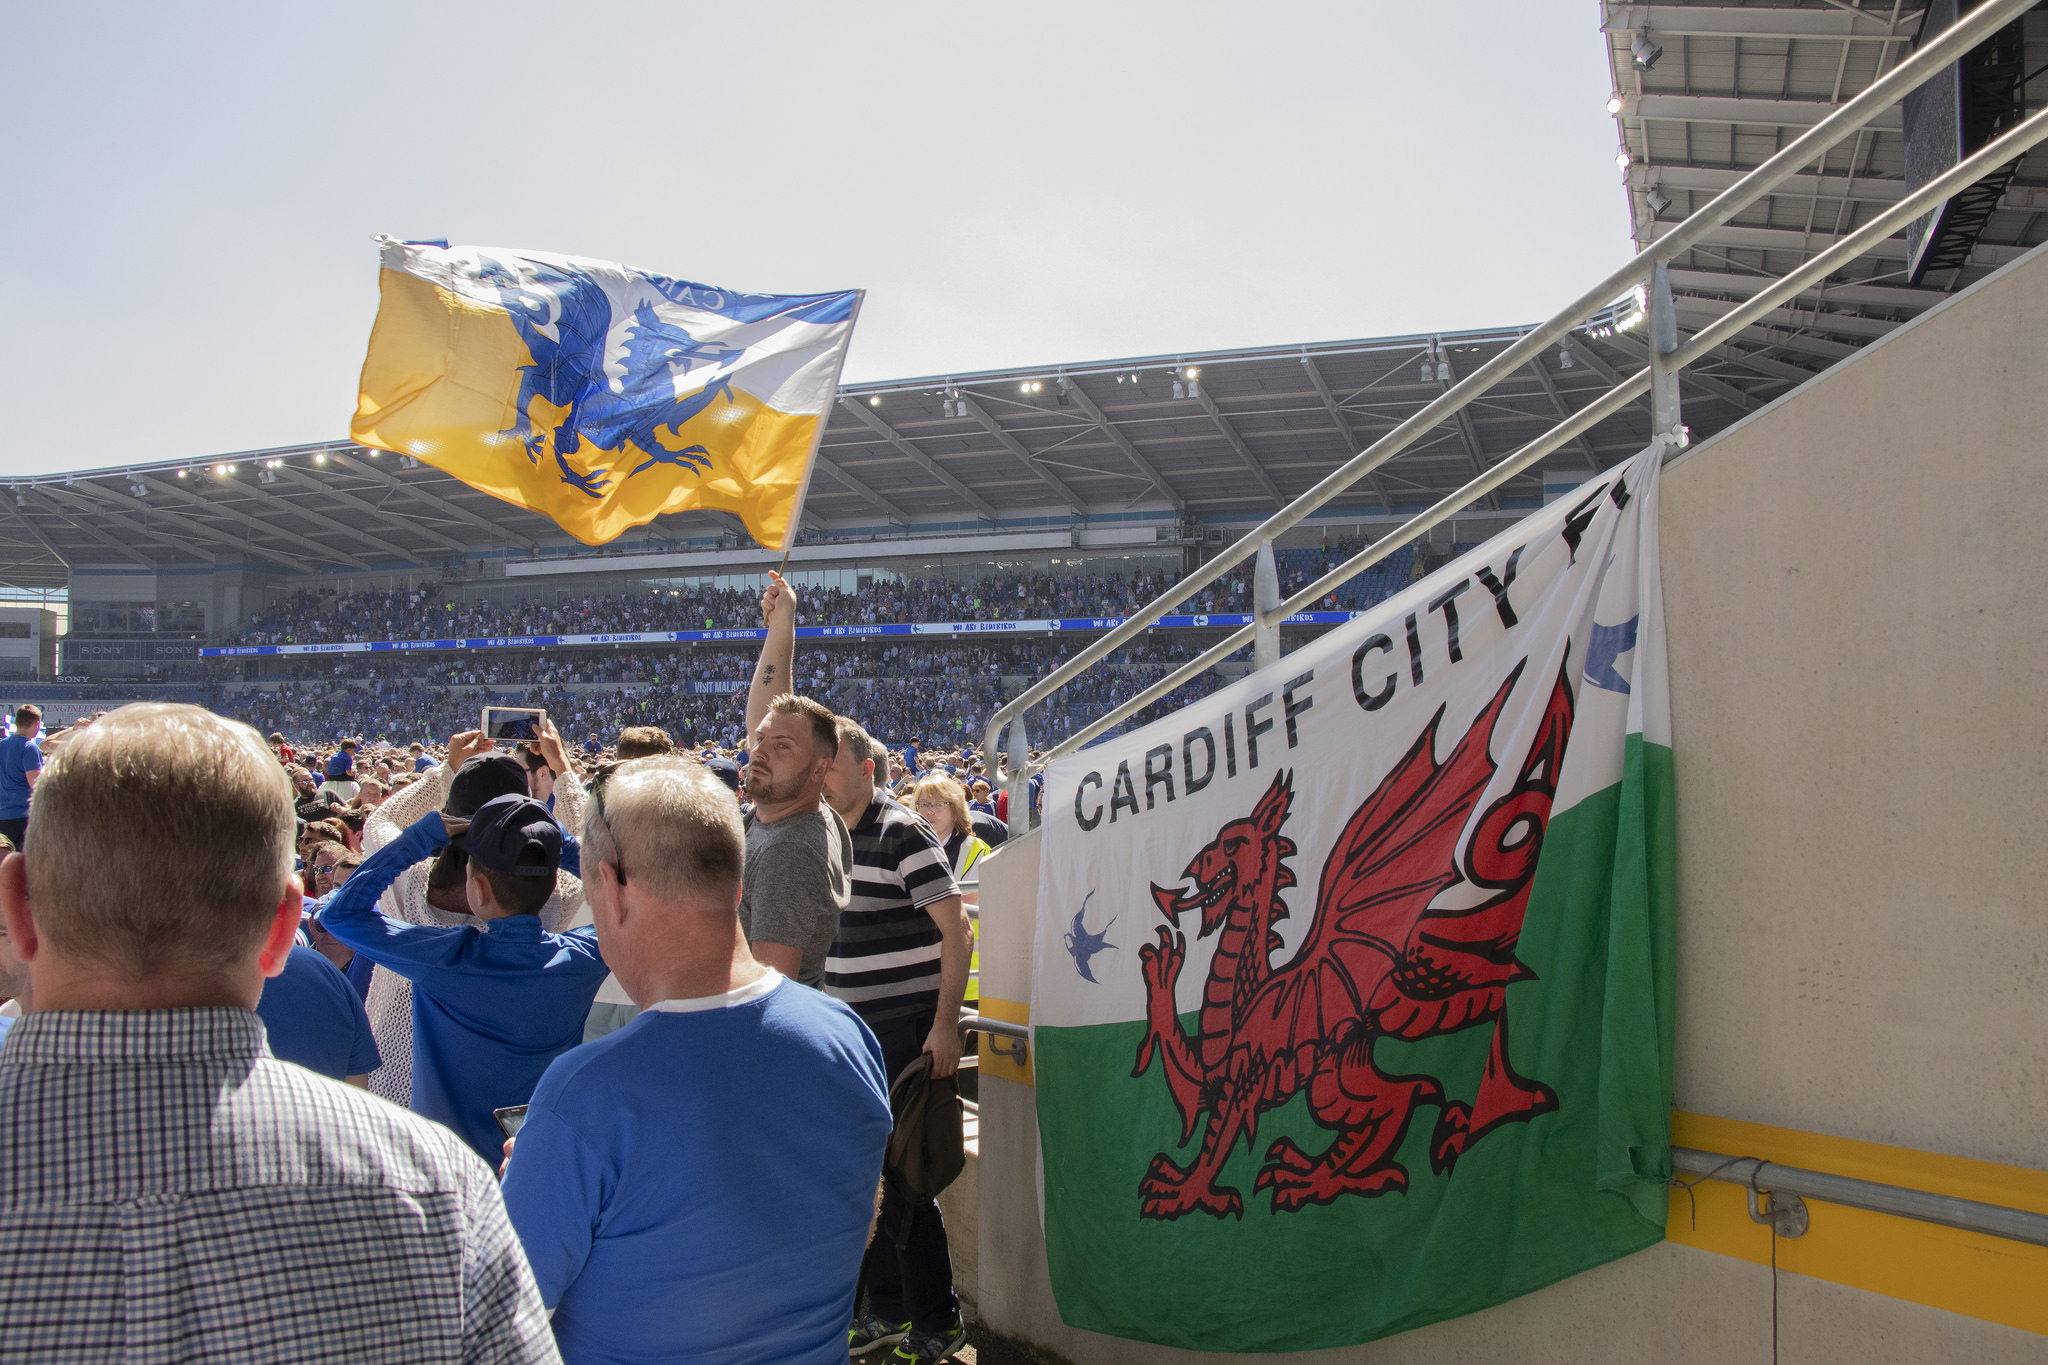 Cardiff City fans (Jeremy Segrott/Flickr)